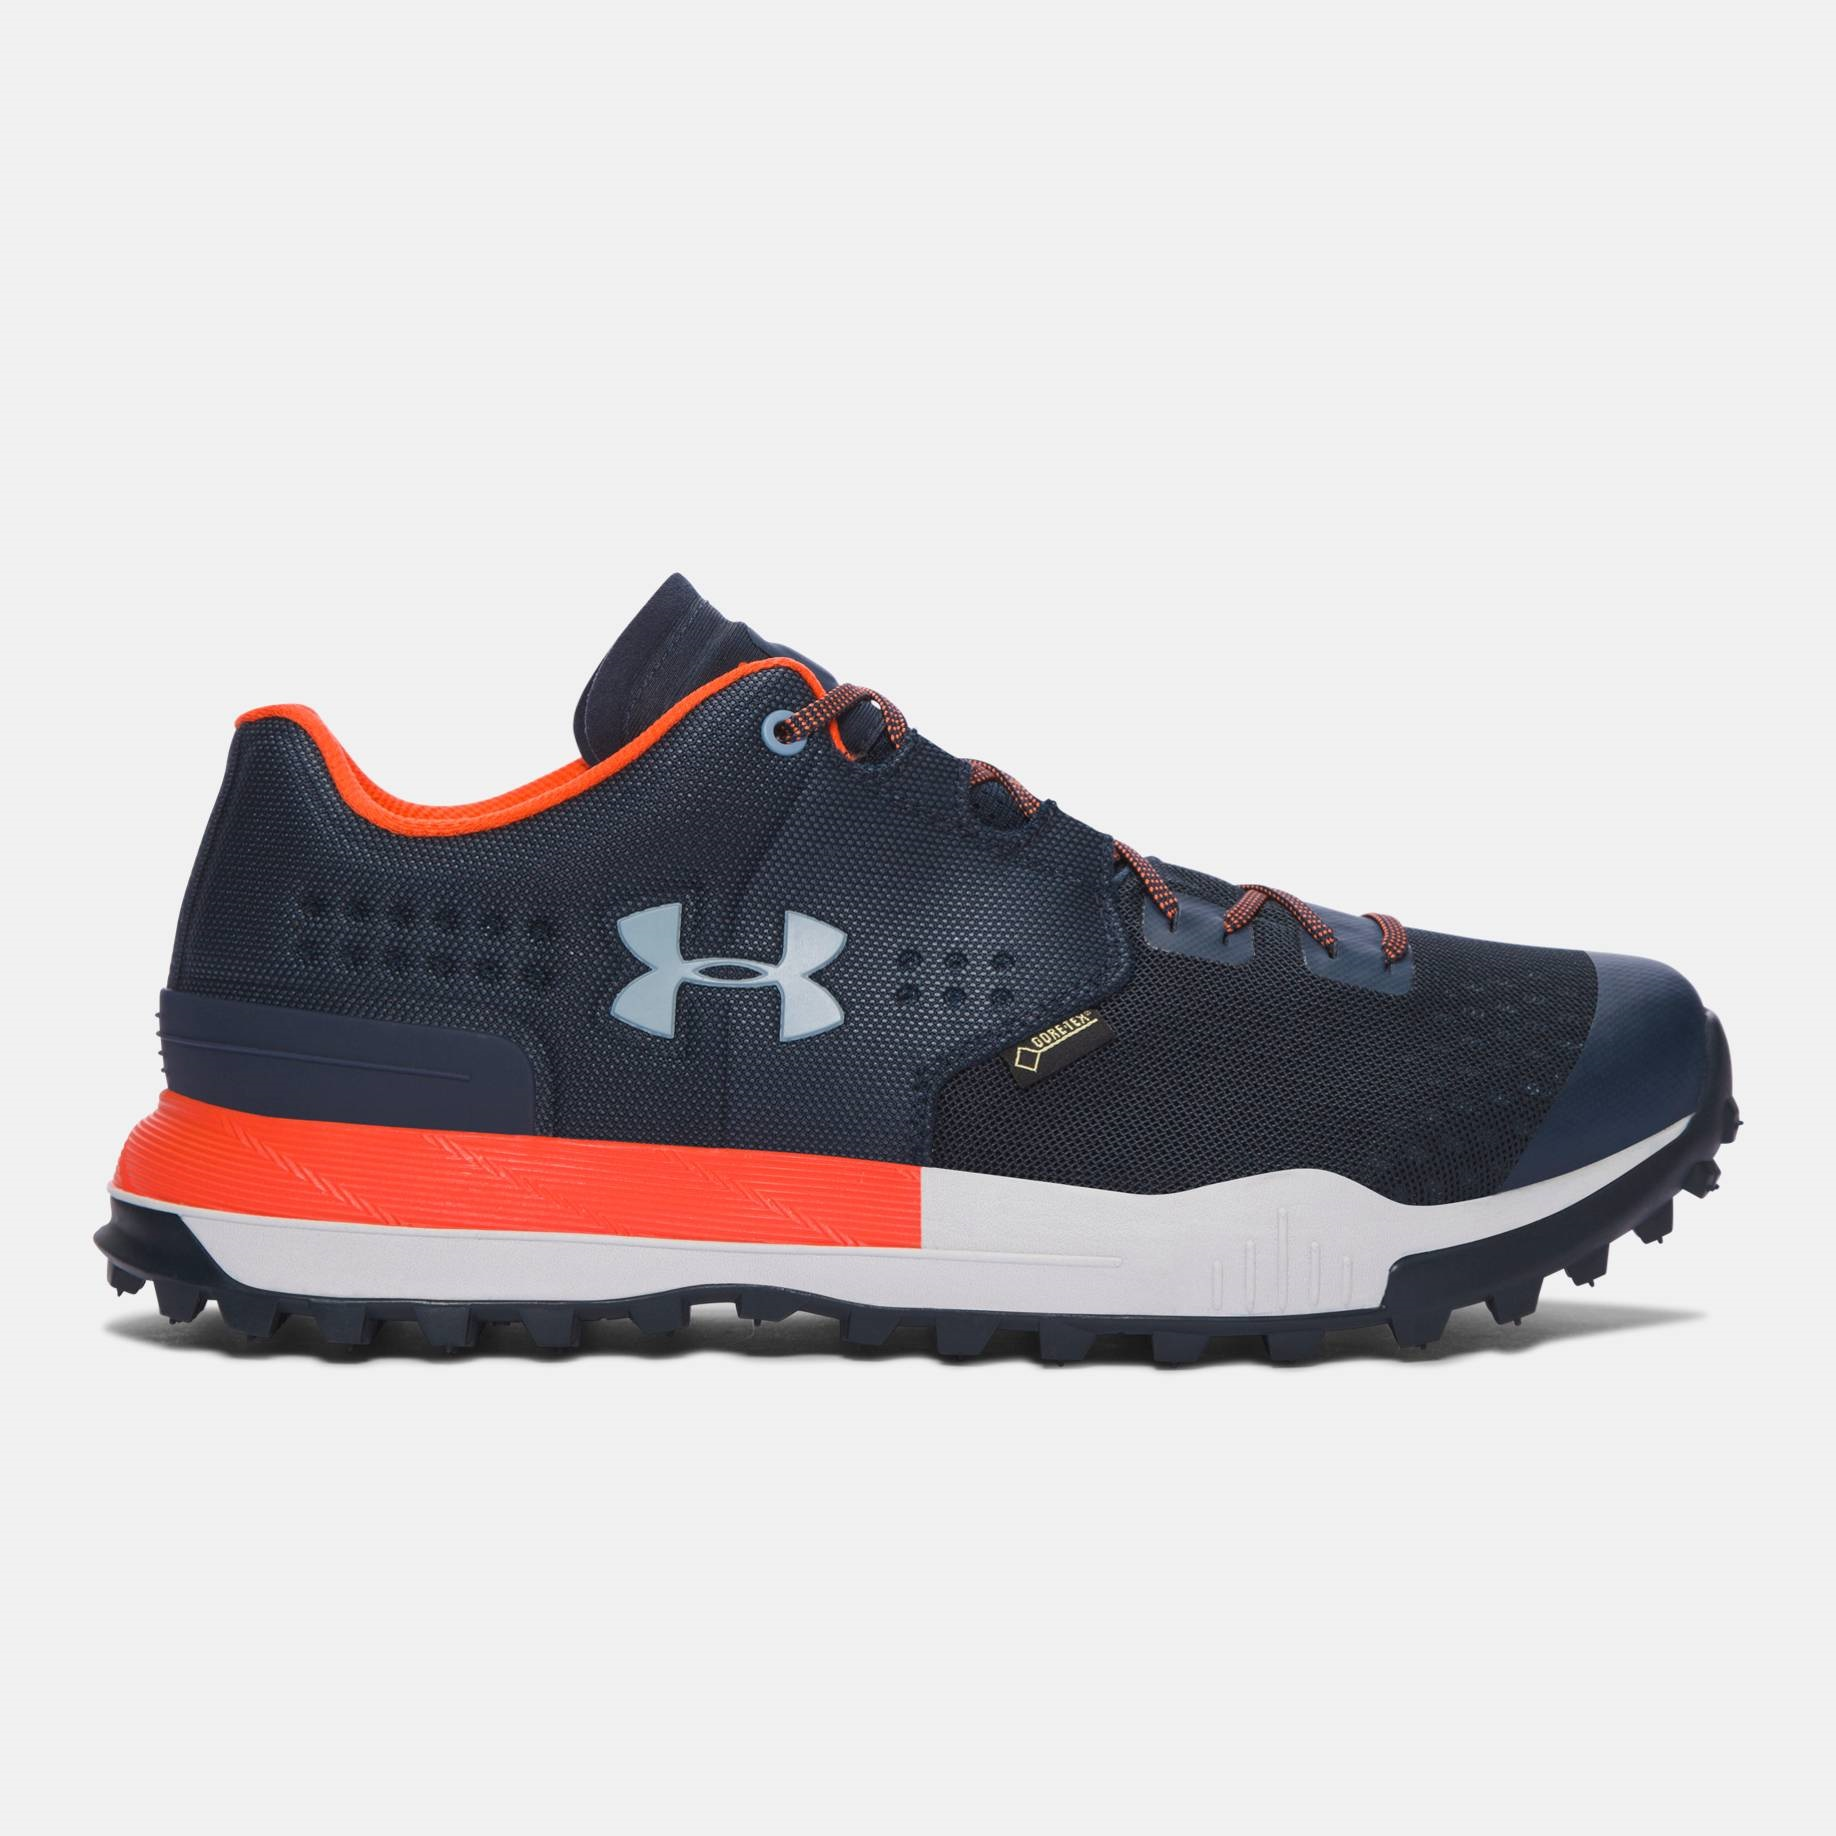 Shoes | Under armour Newell Ridge Low GORE-TEX